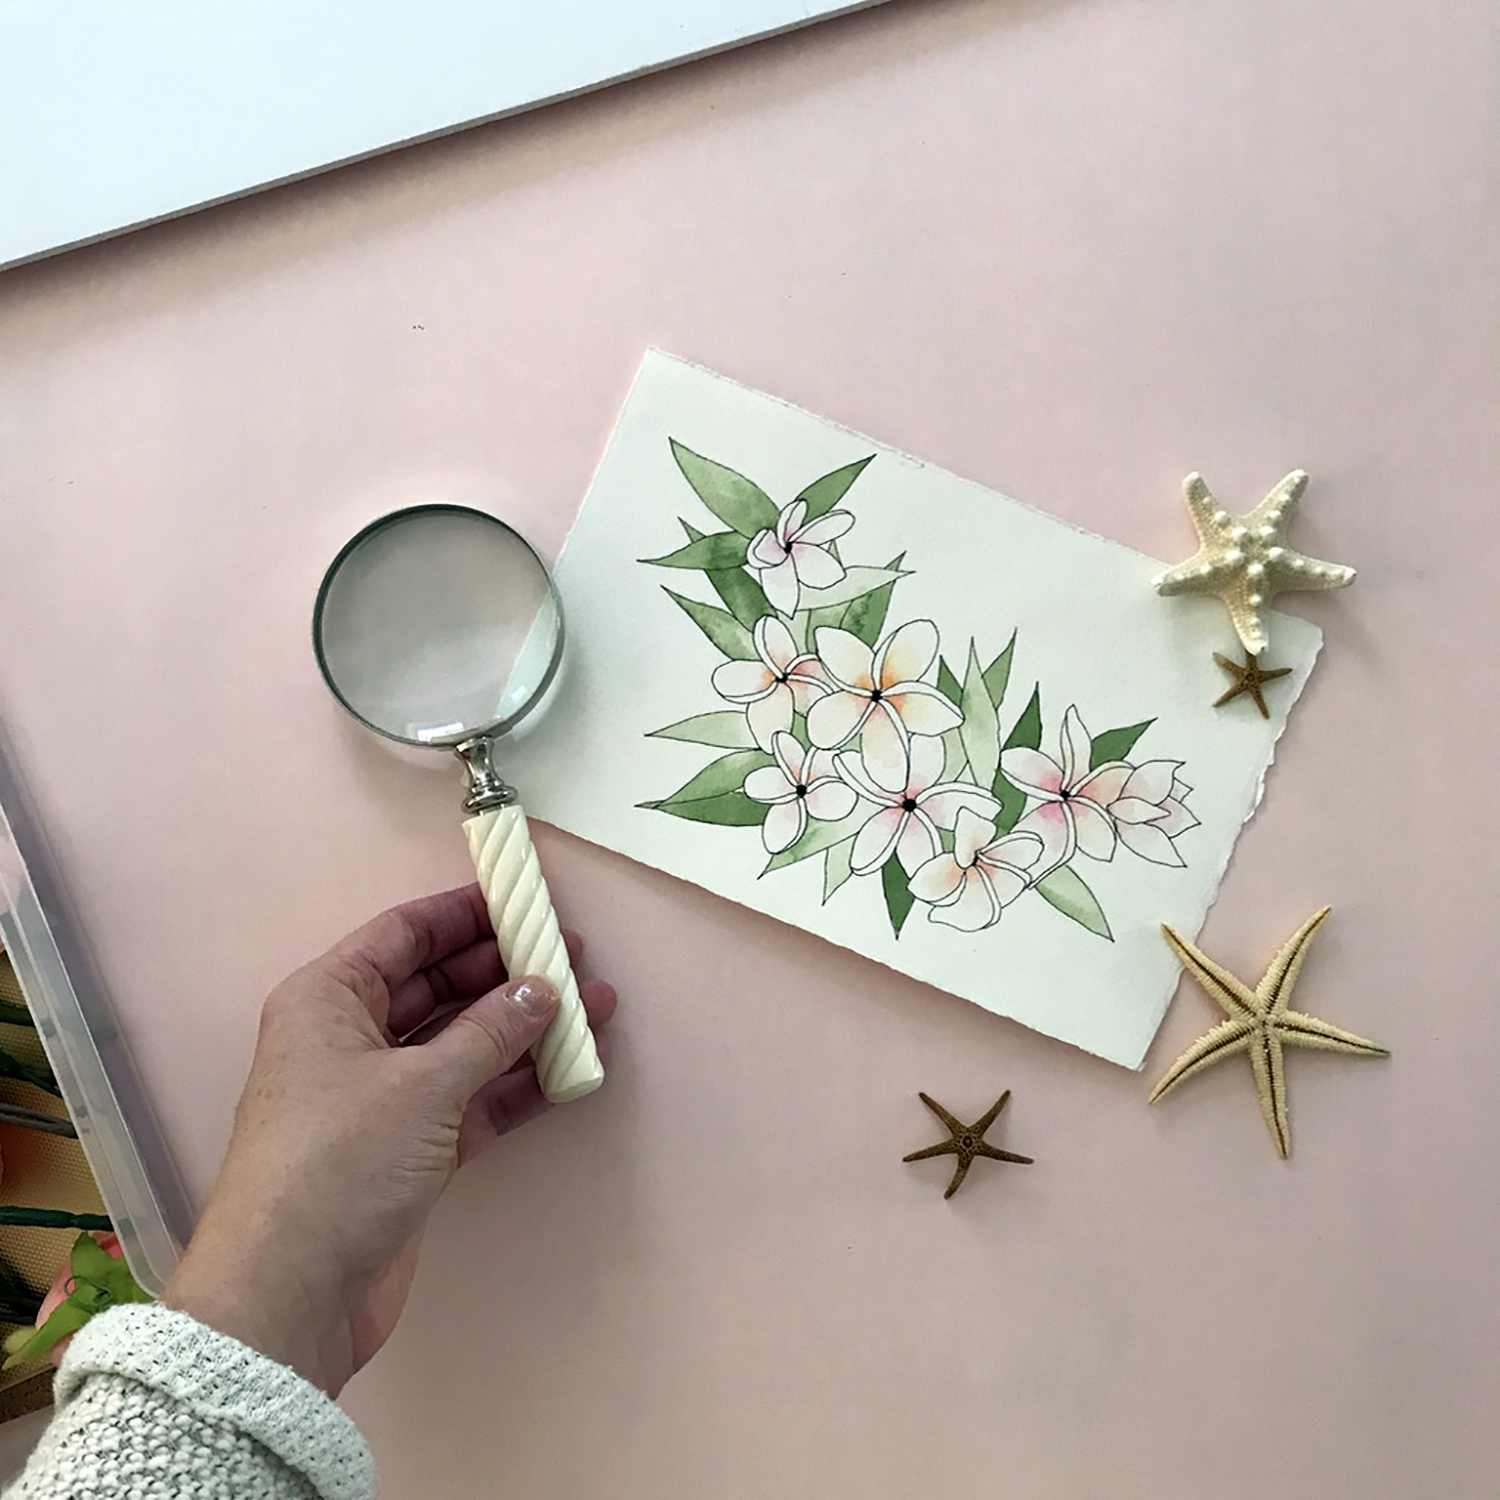 How to style flatlay photos of your artwork or products - tips & tricks for showcasing your work for listing images, marketing, and social media use, from danielleandco.com